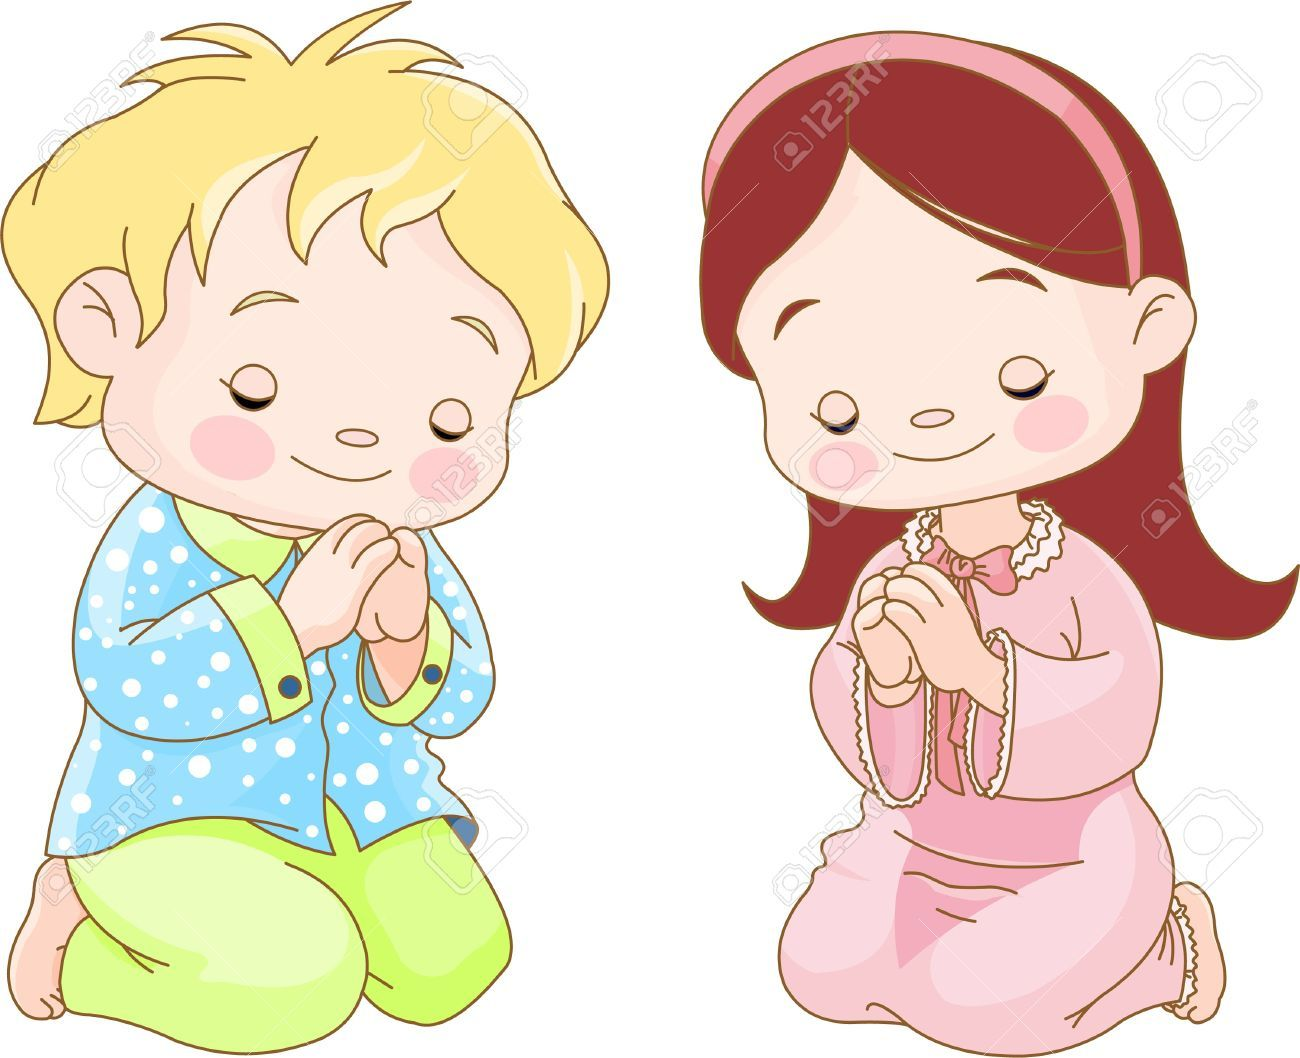 Clipart image of boy and girl praying image library download Boy and girl praying clipart » Clipart Portal image library download